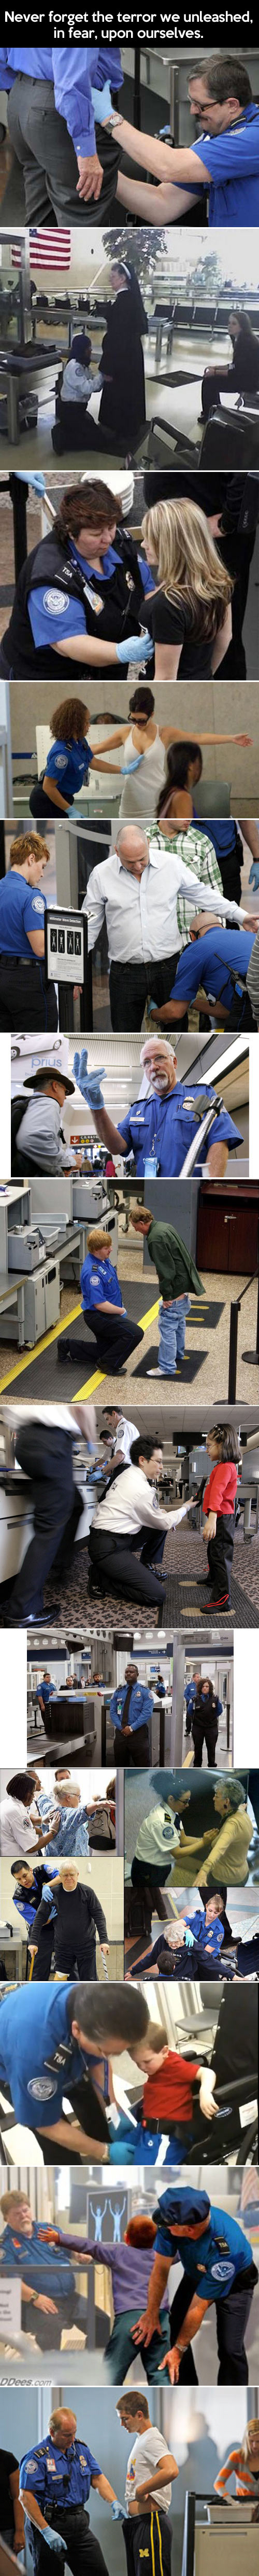 funny-airport-security-check-officer